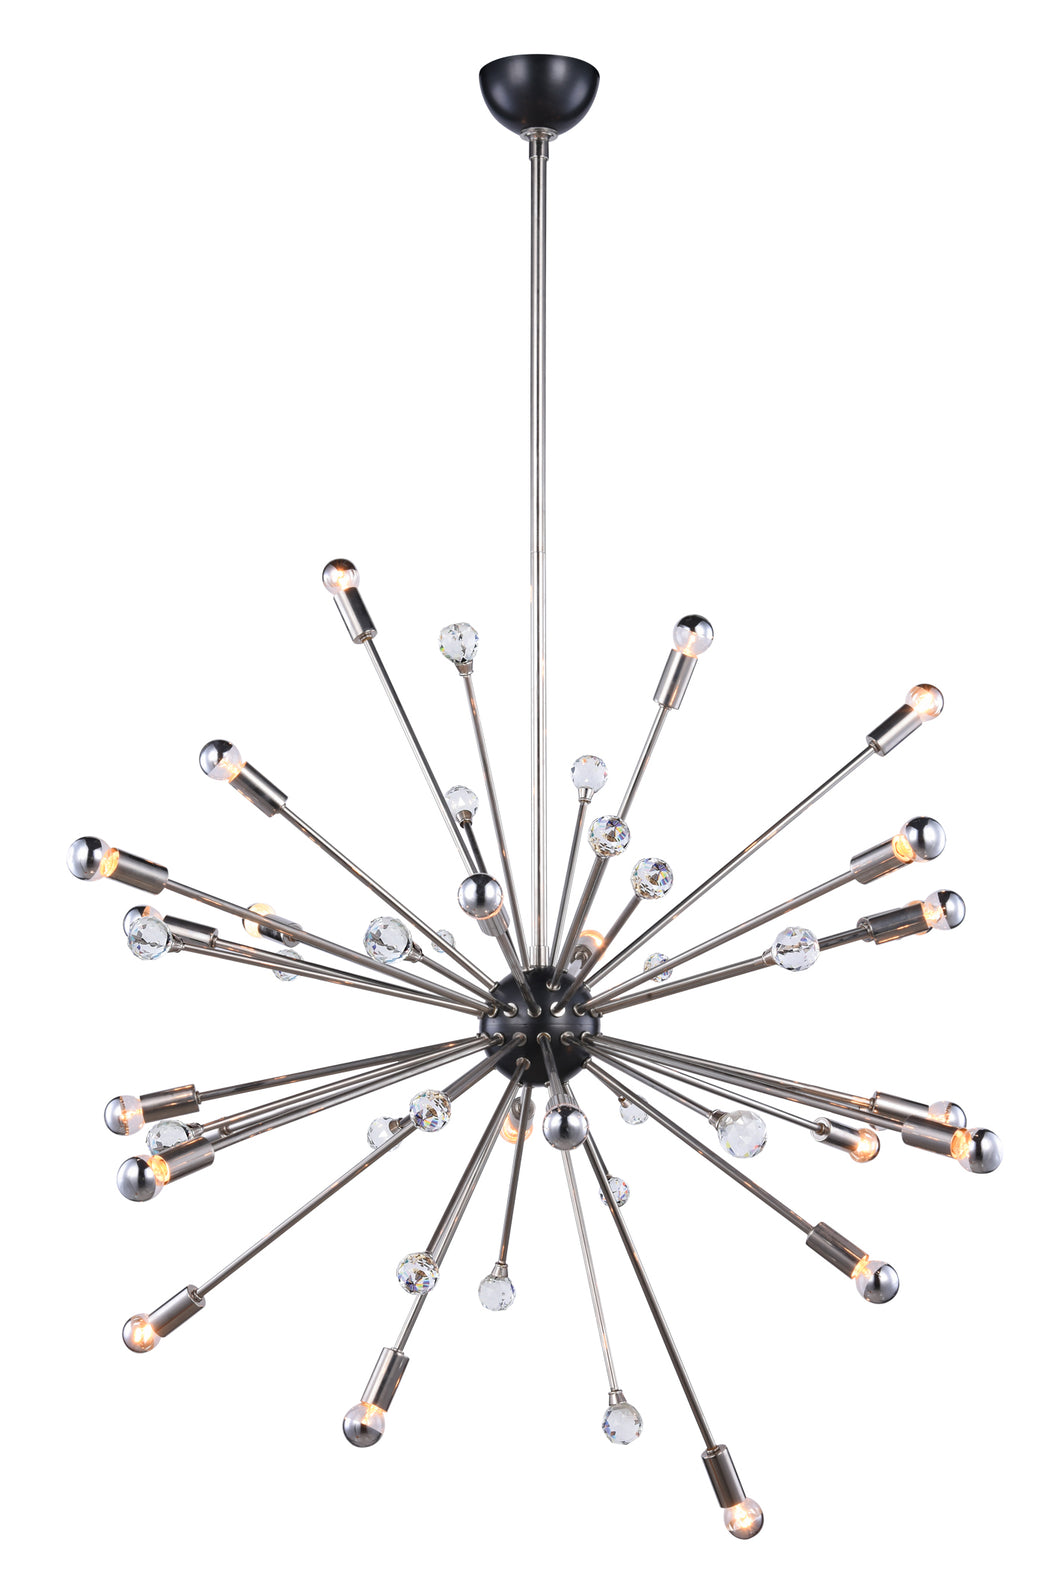 24-Light Polished Nickel Finish Chandelier